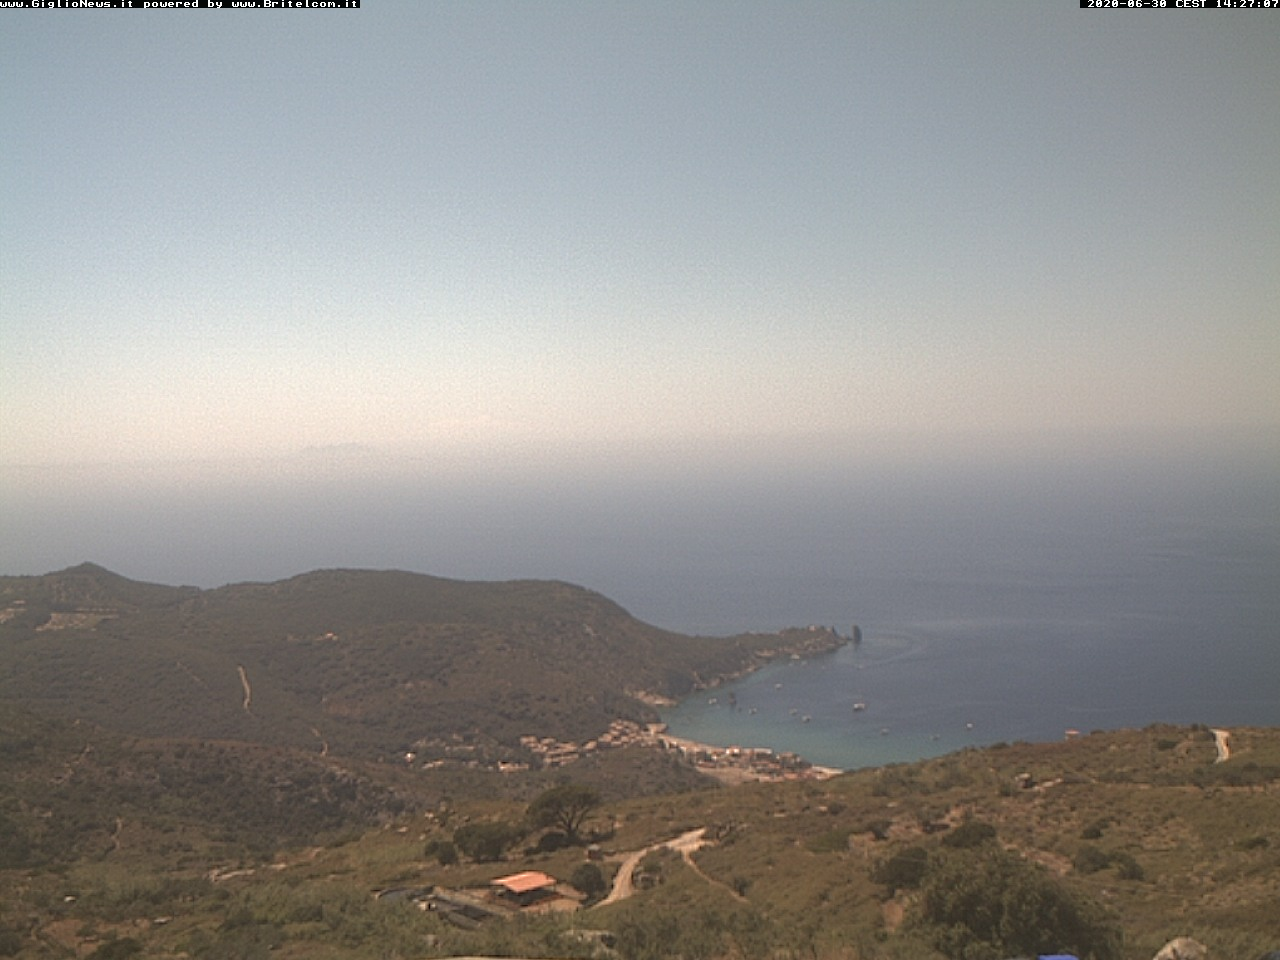 Webcam arcipelago toscano